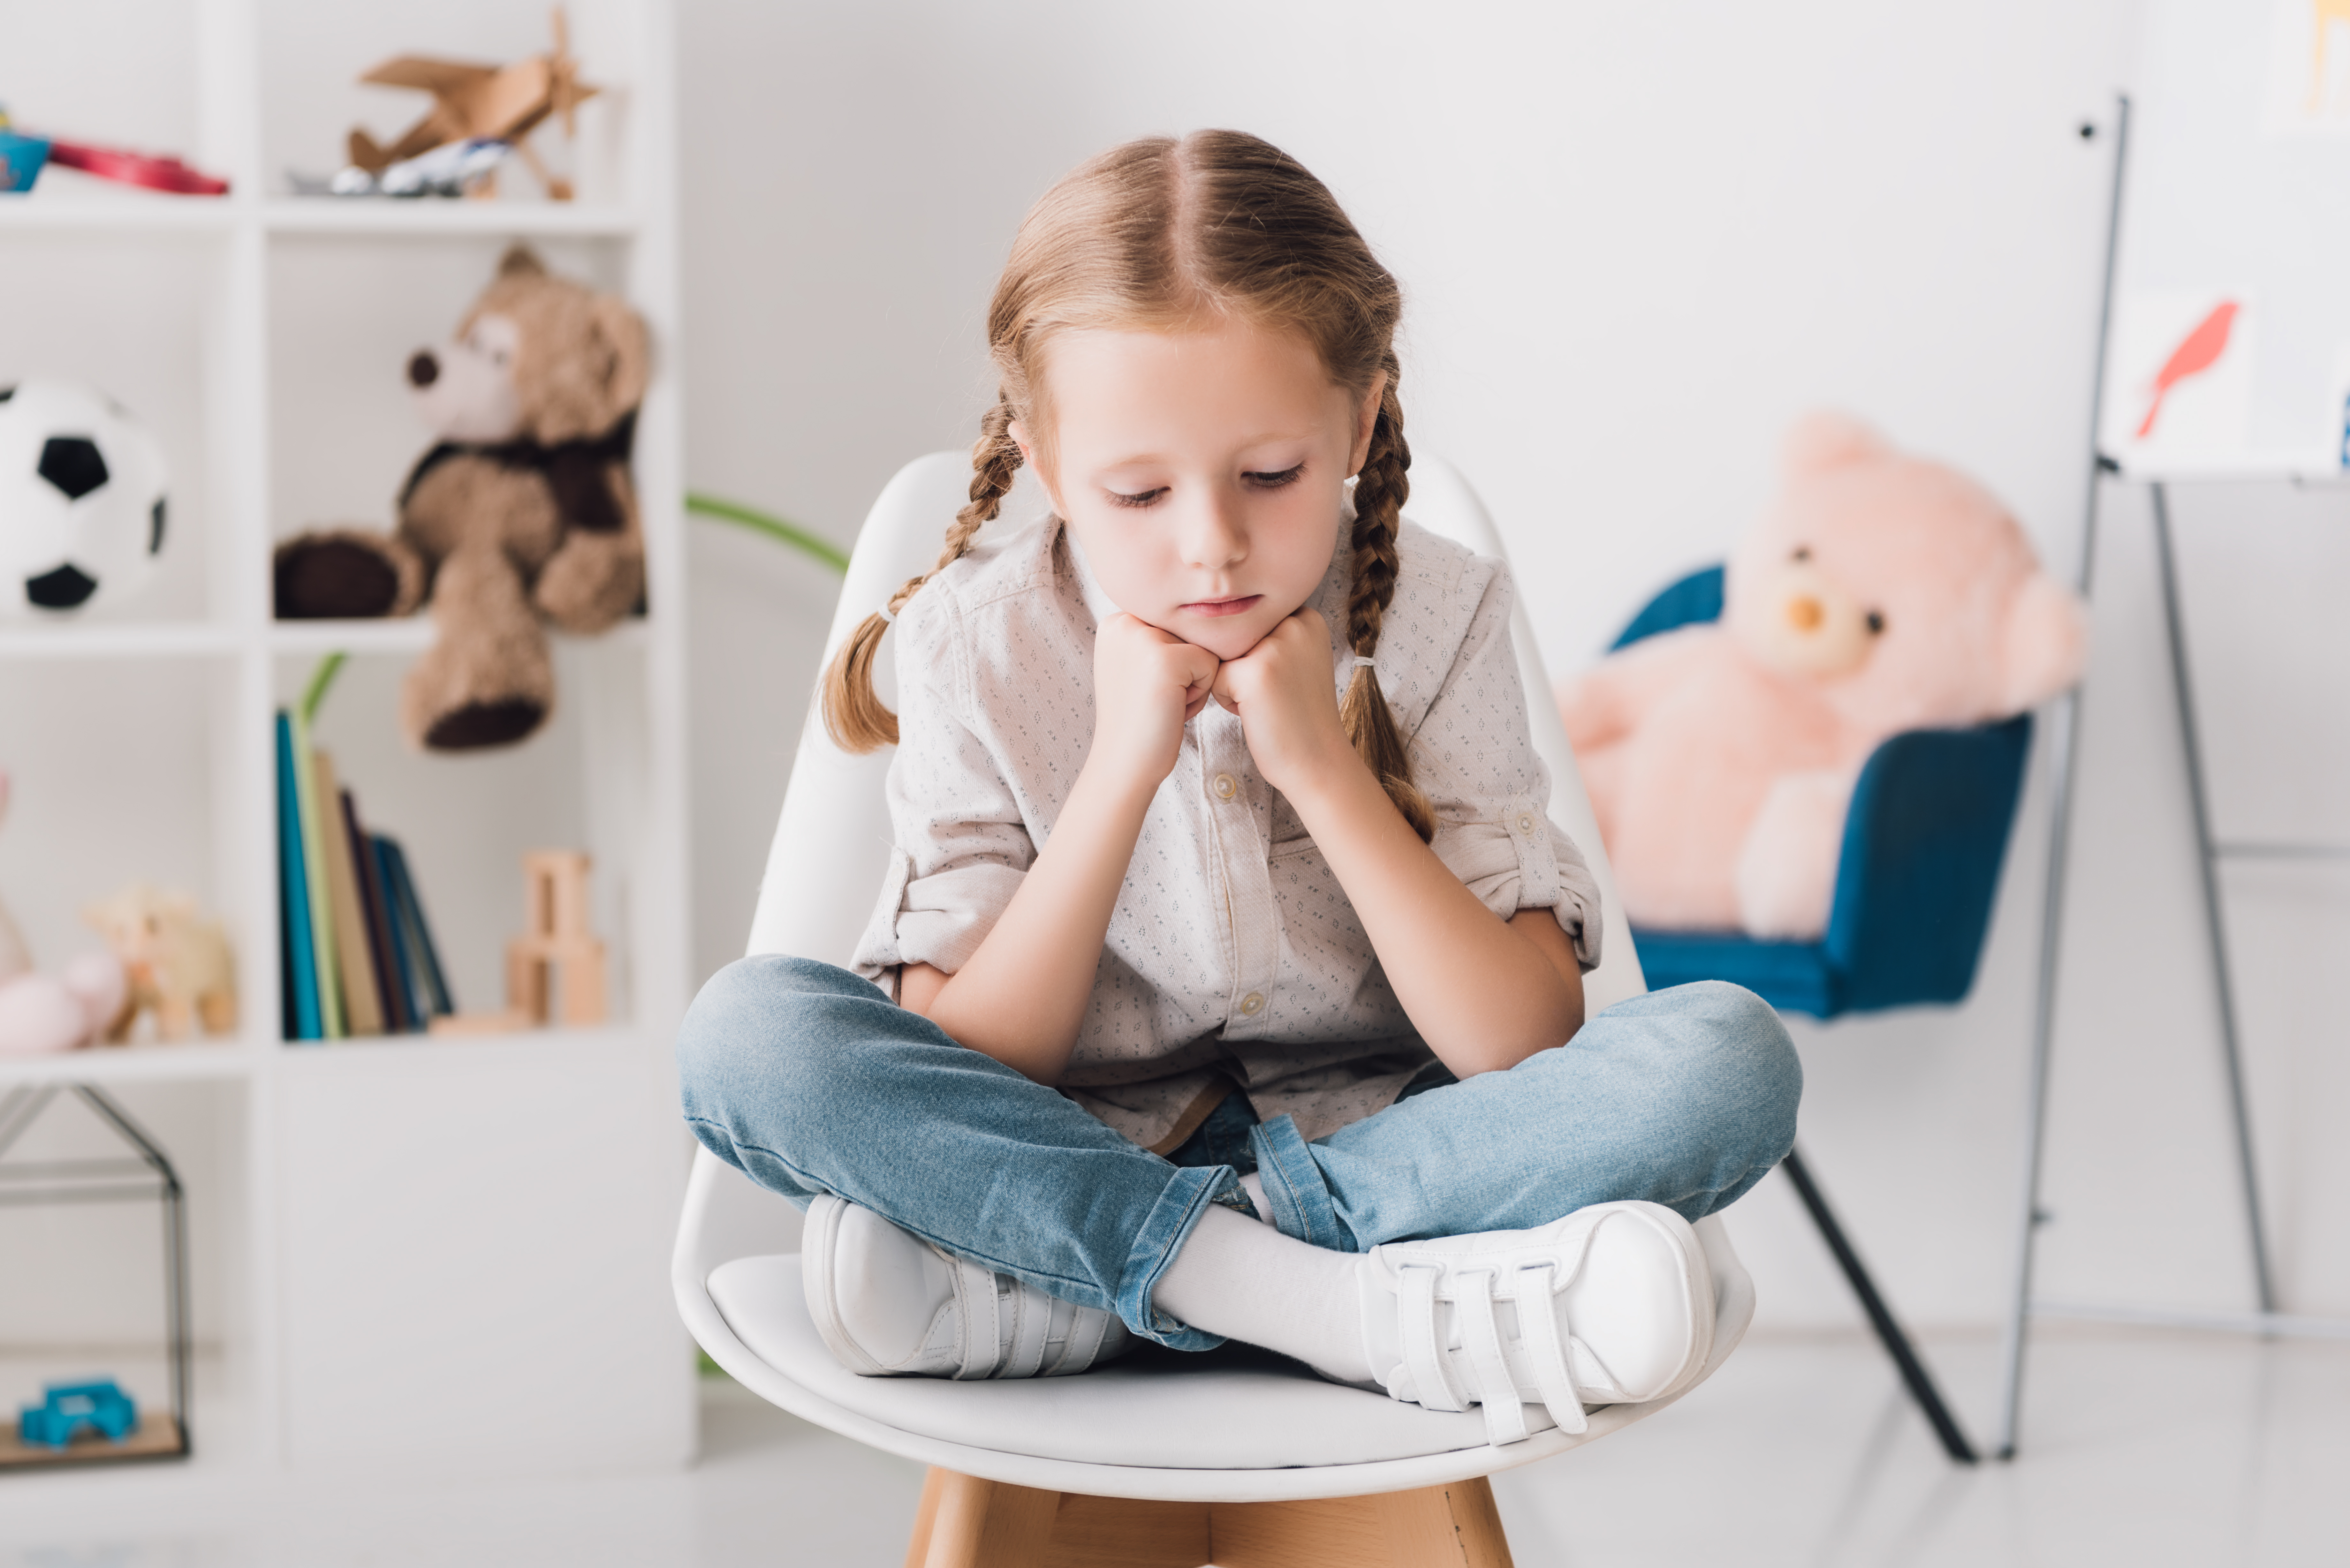 How To Discipline Toddler Misbehavior Using Time In instead of Time Out